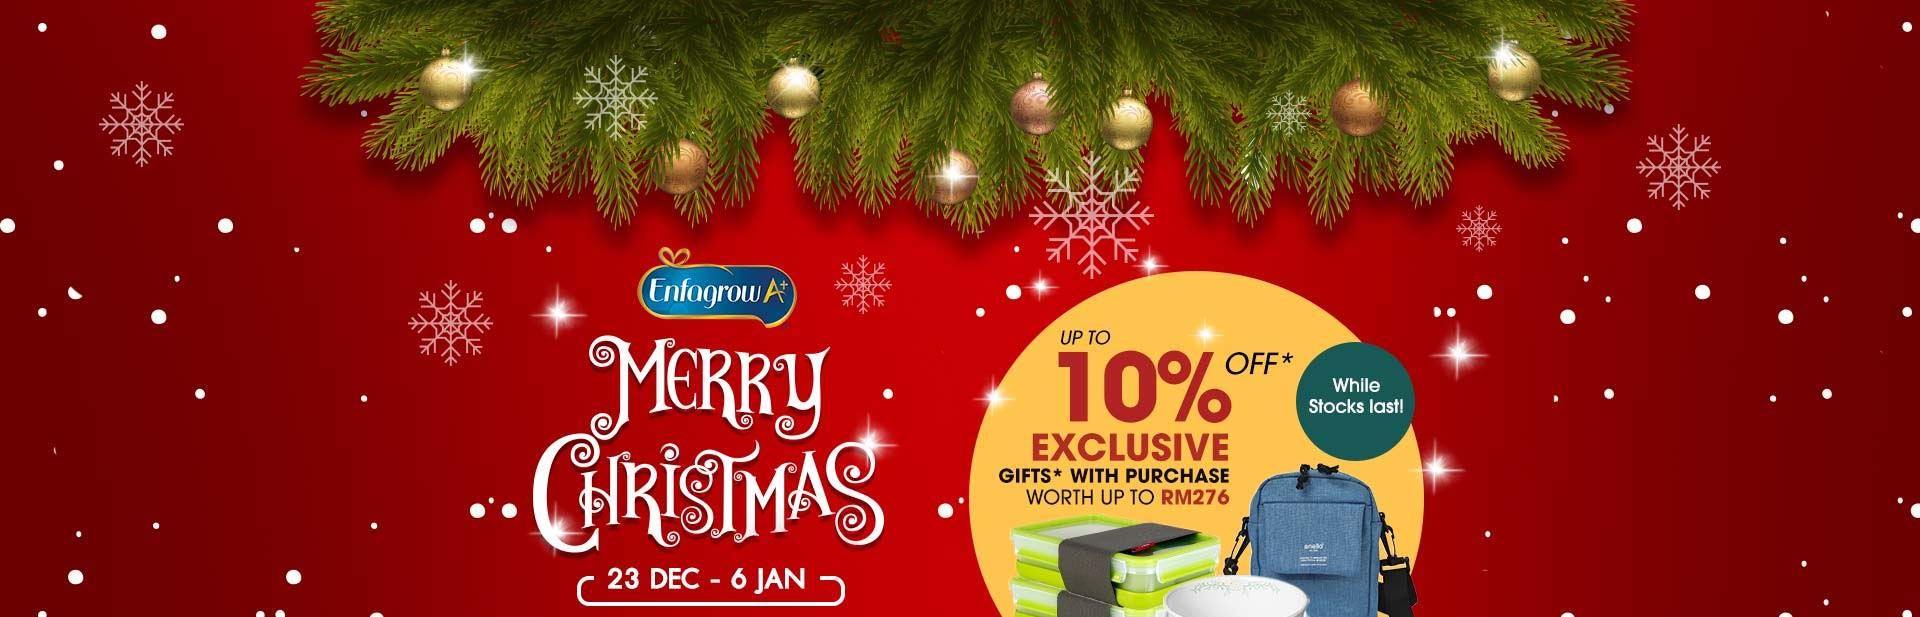 up to 10% off promo